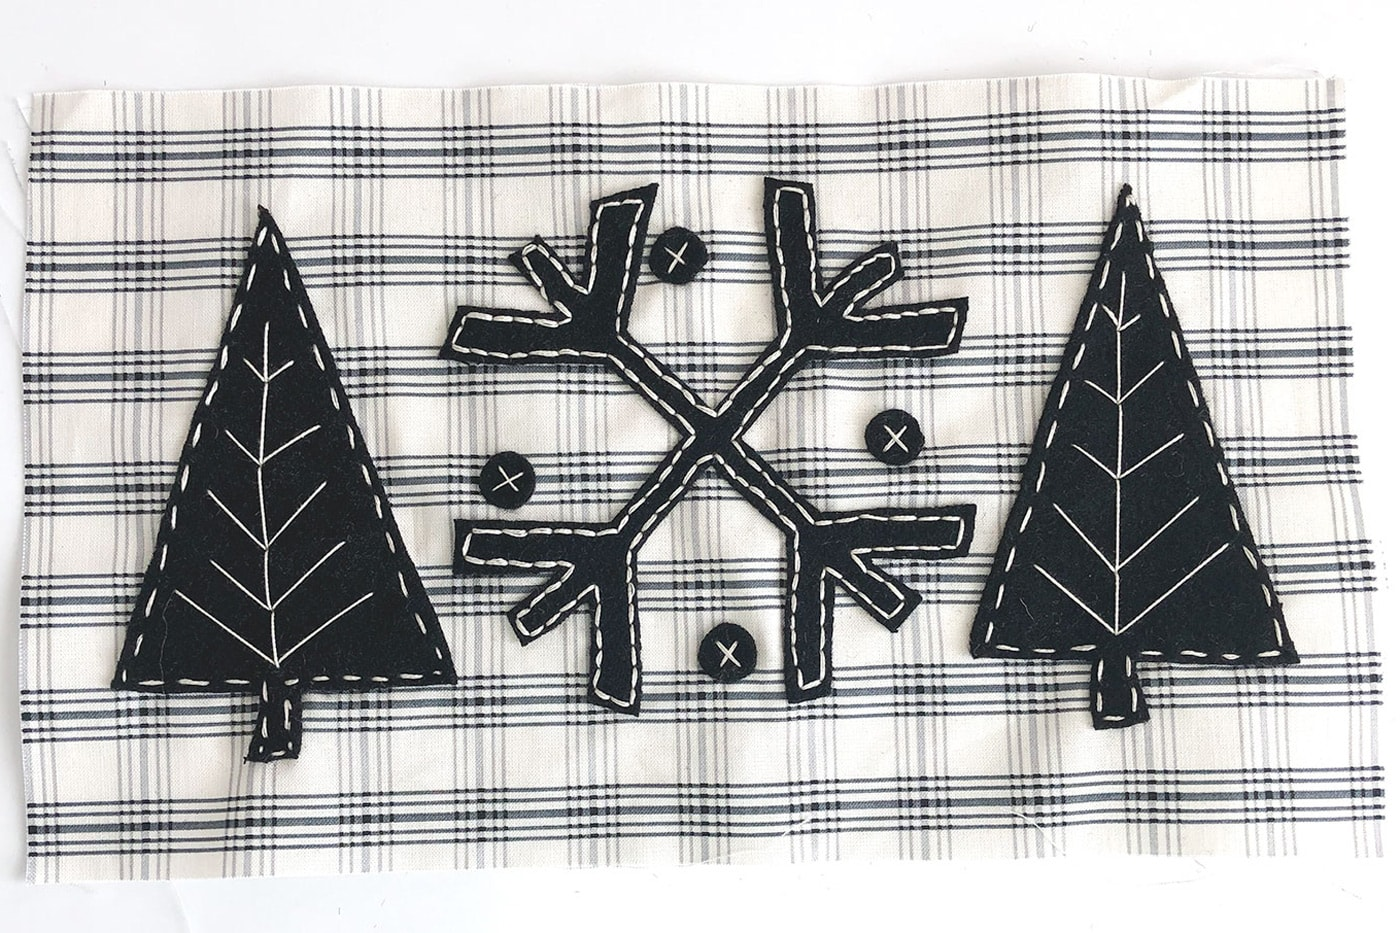 finished applique on black and white fabric